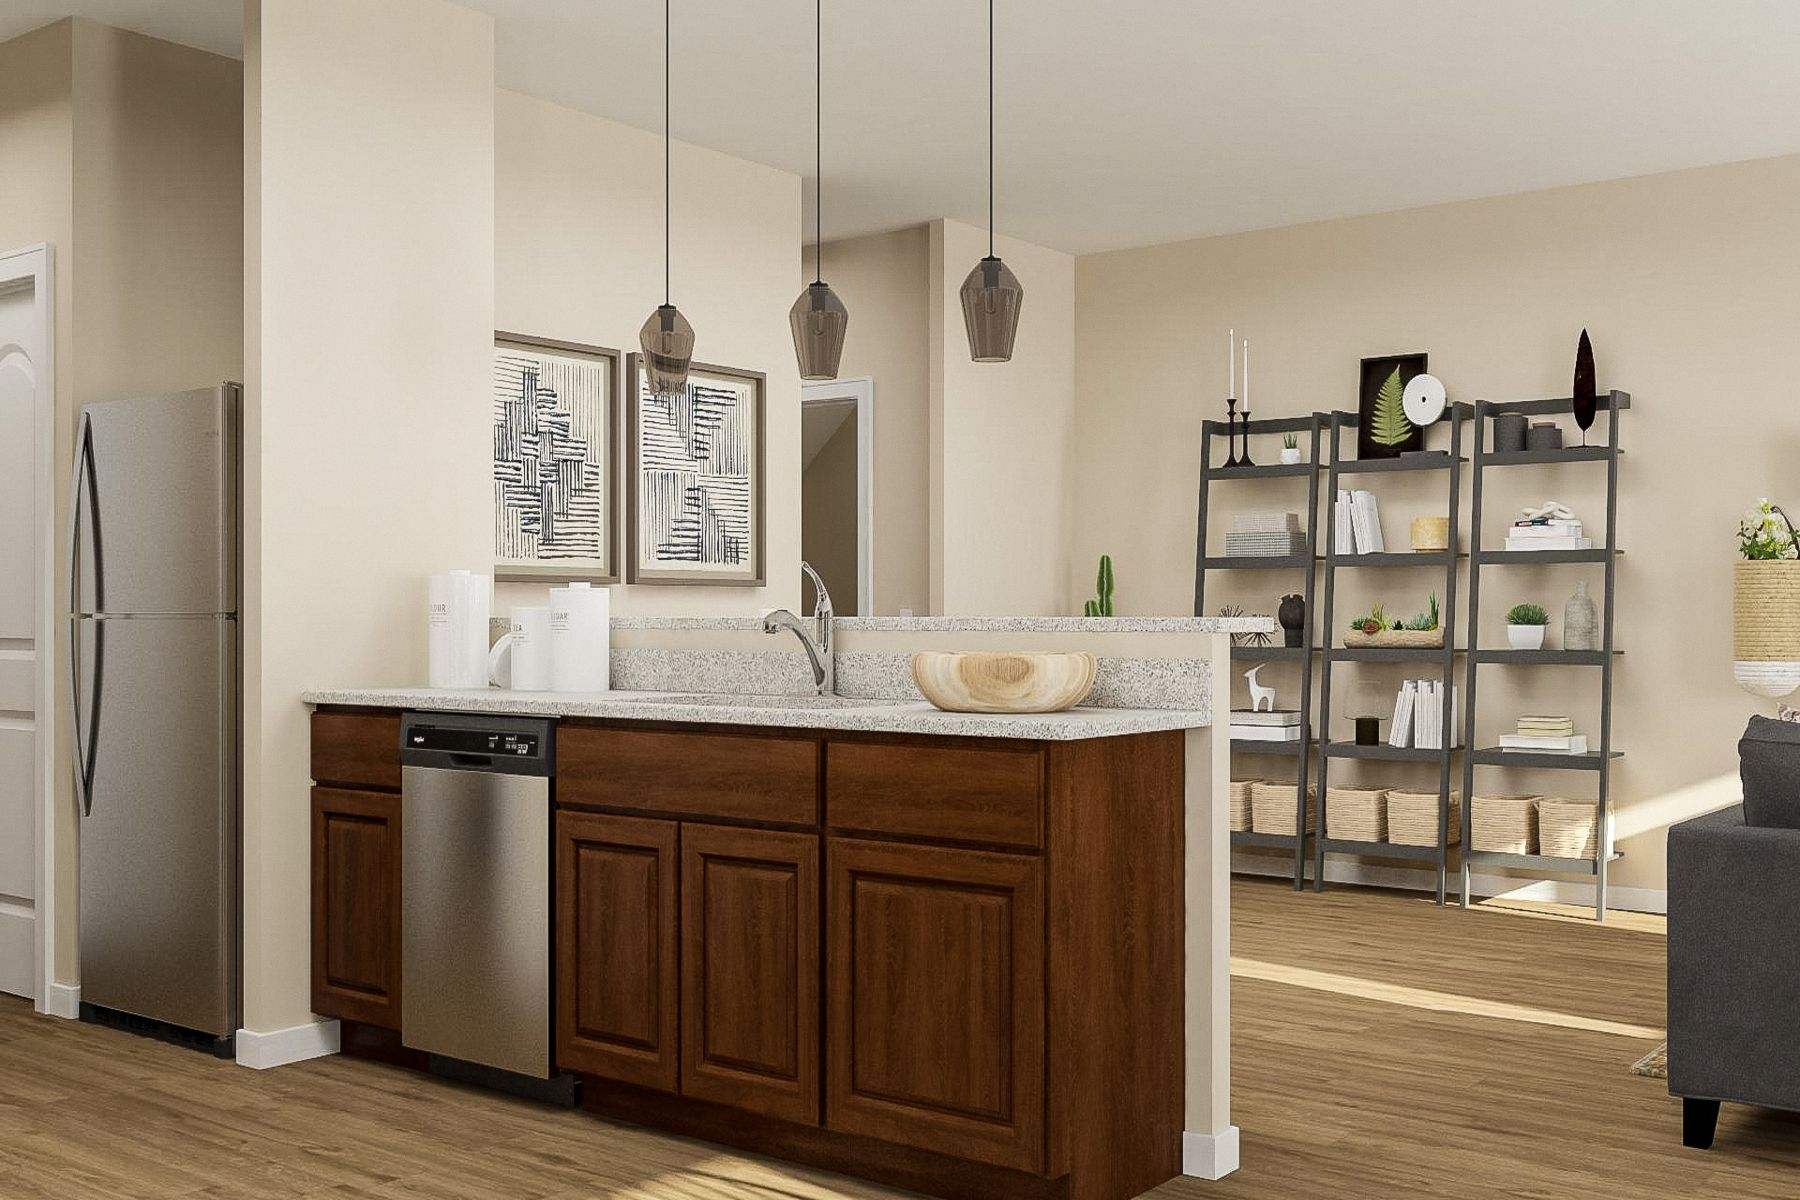 The Lincoln by LGI Homes:This beautiful dream home comes with energy-efficient appliances already included